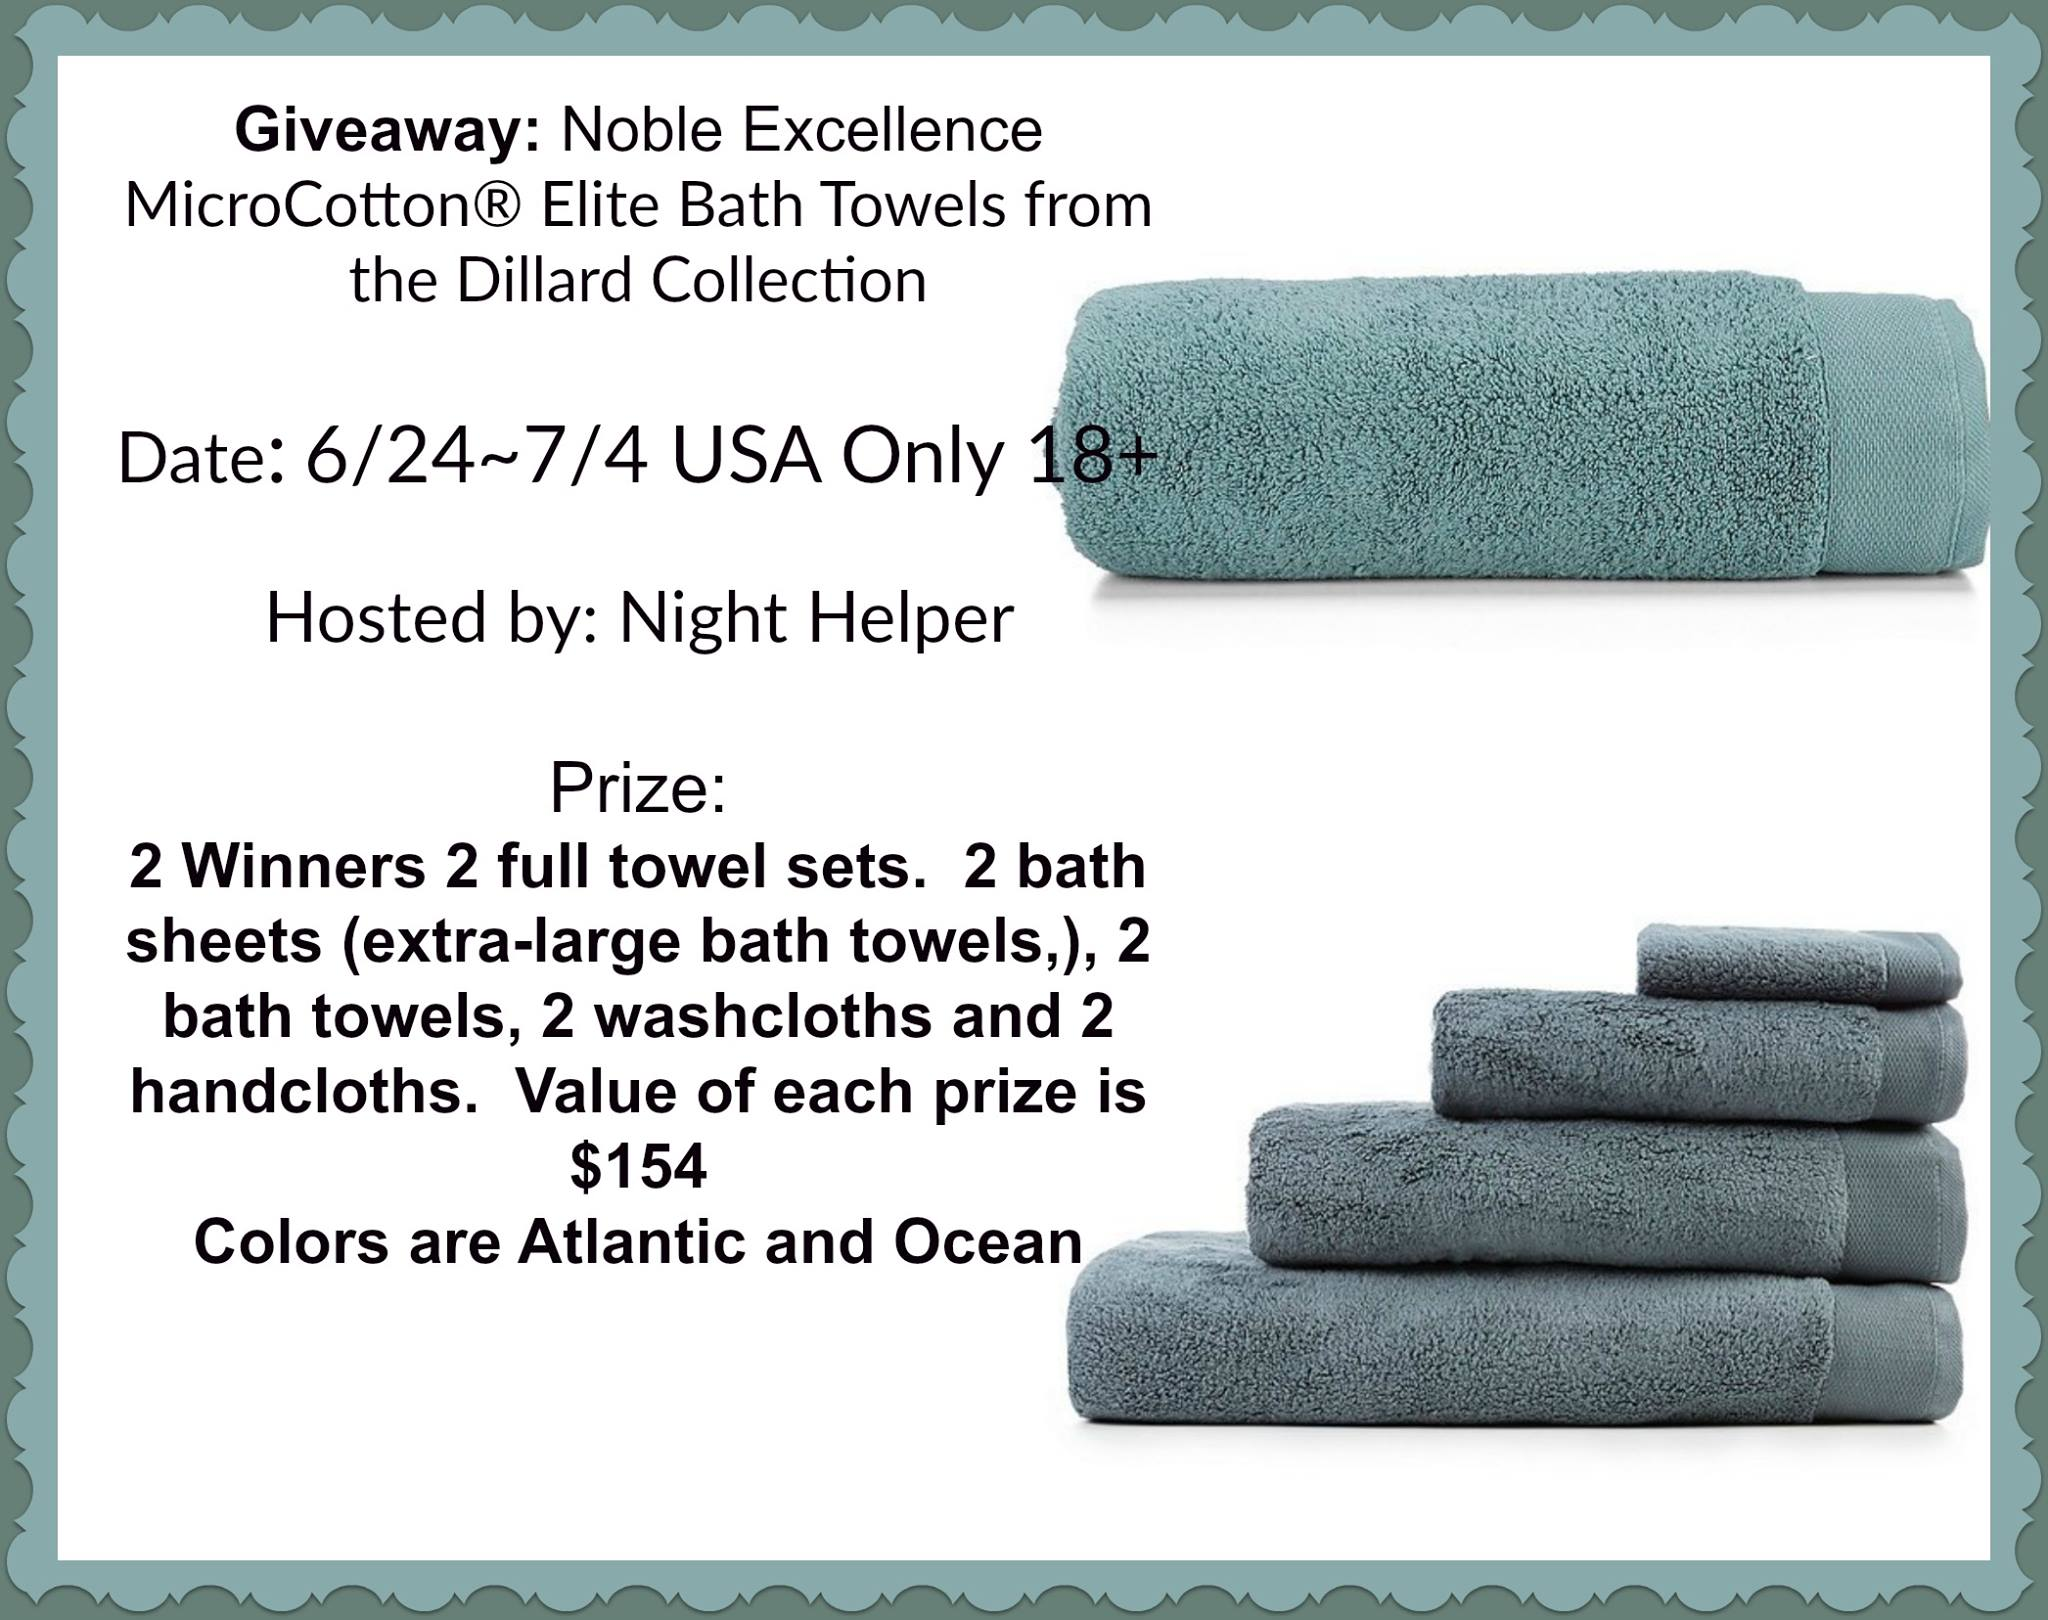 2 #Winners each Win a set of Noble Excellence MicroCotton® Elite Bath Towels!